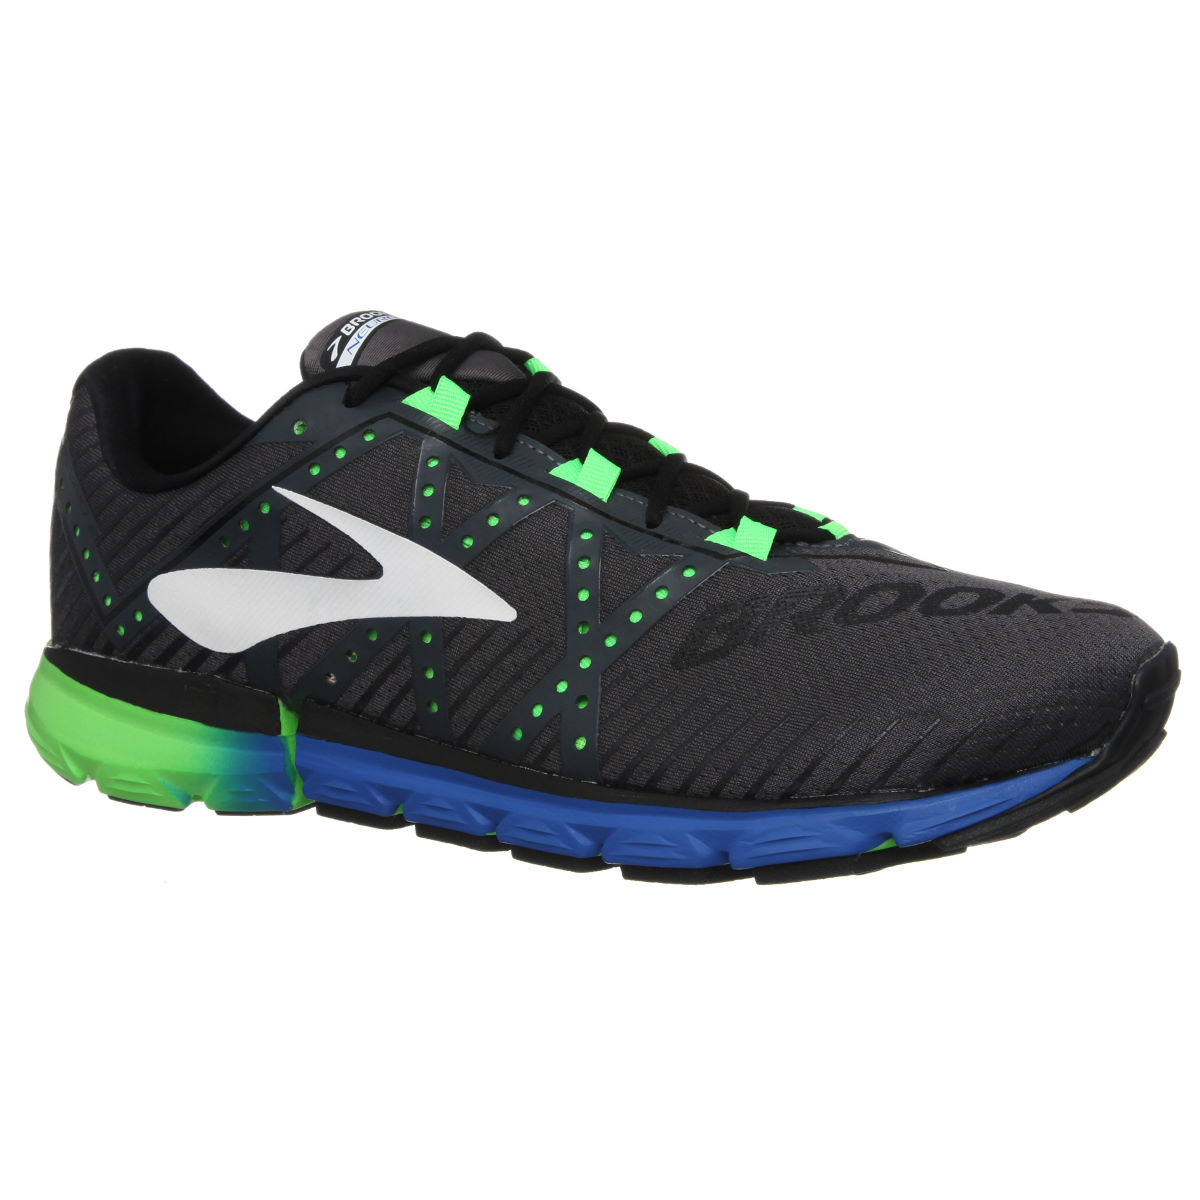 Brooks Neuro 2 Shoes - Zapatillas acolchadas